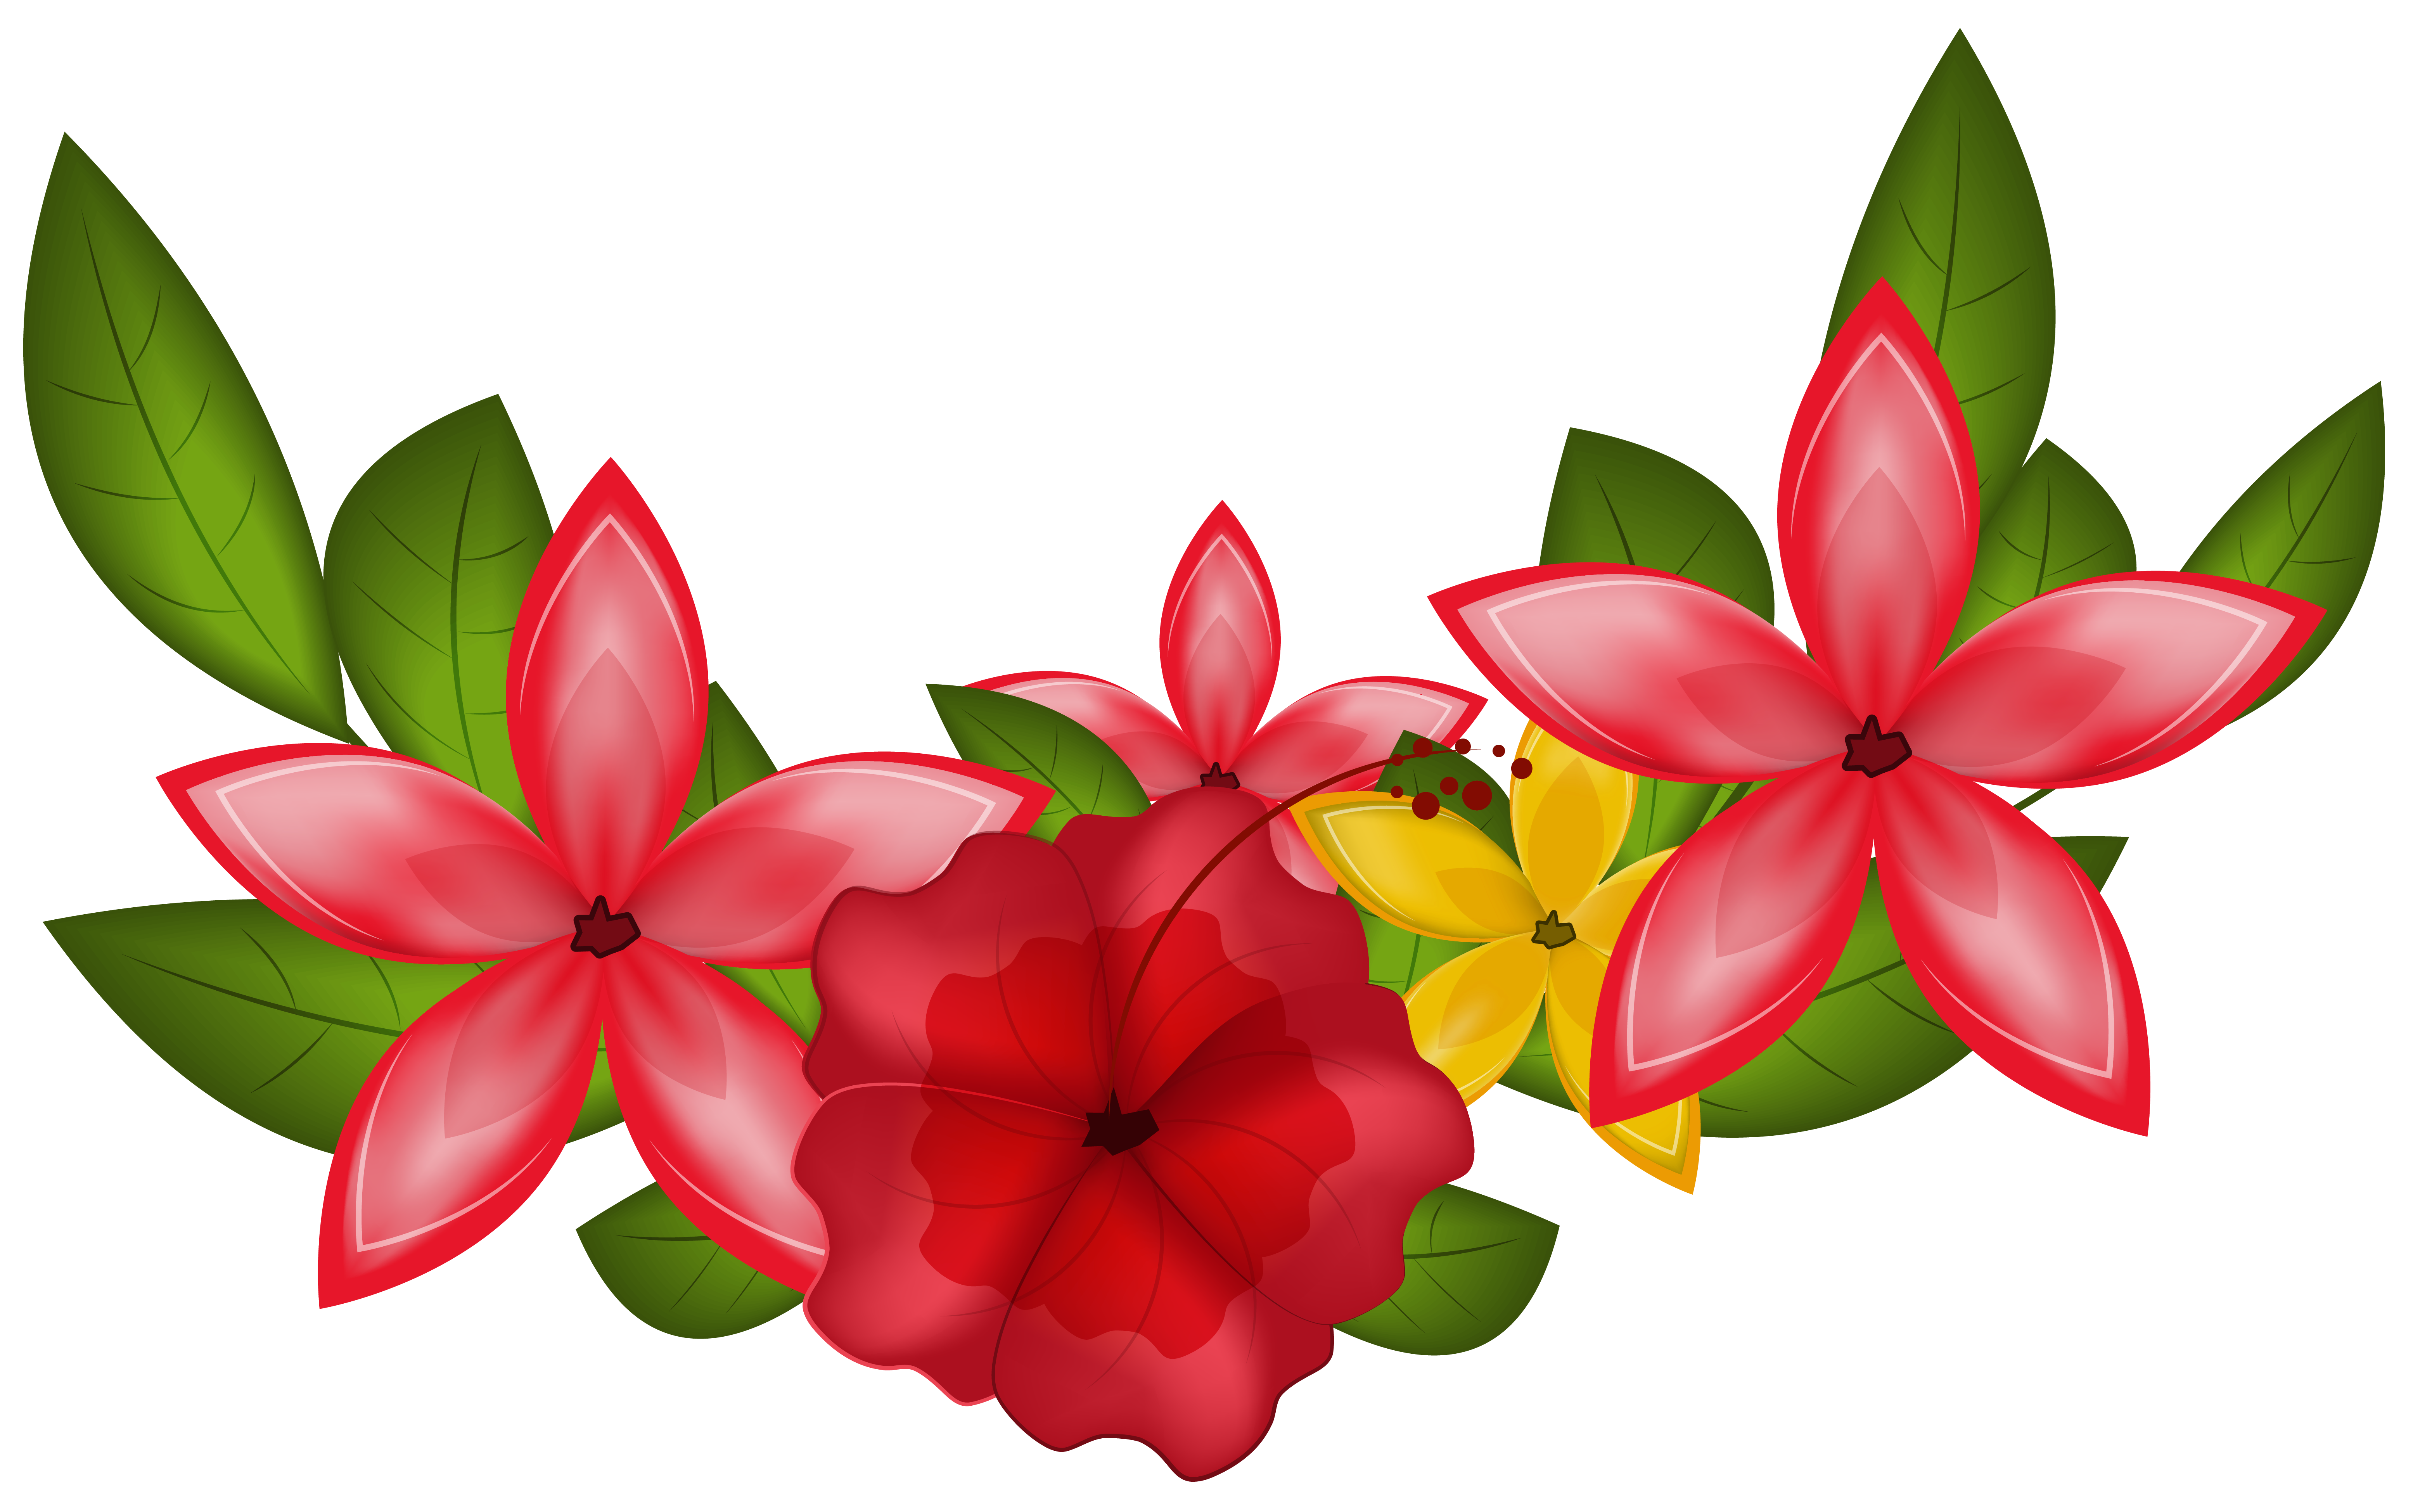 Floral clipart png. Exotic decoration image gallery